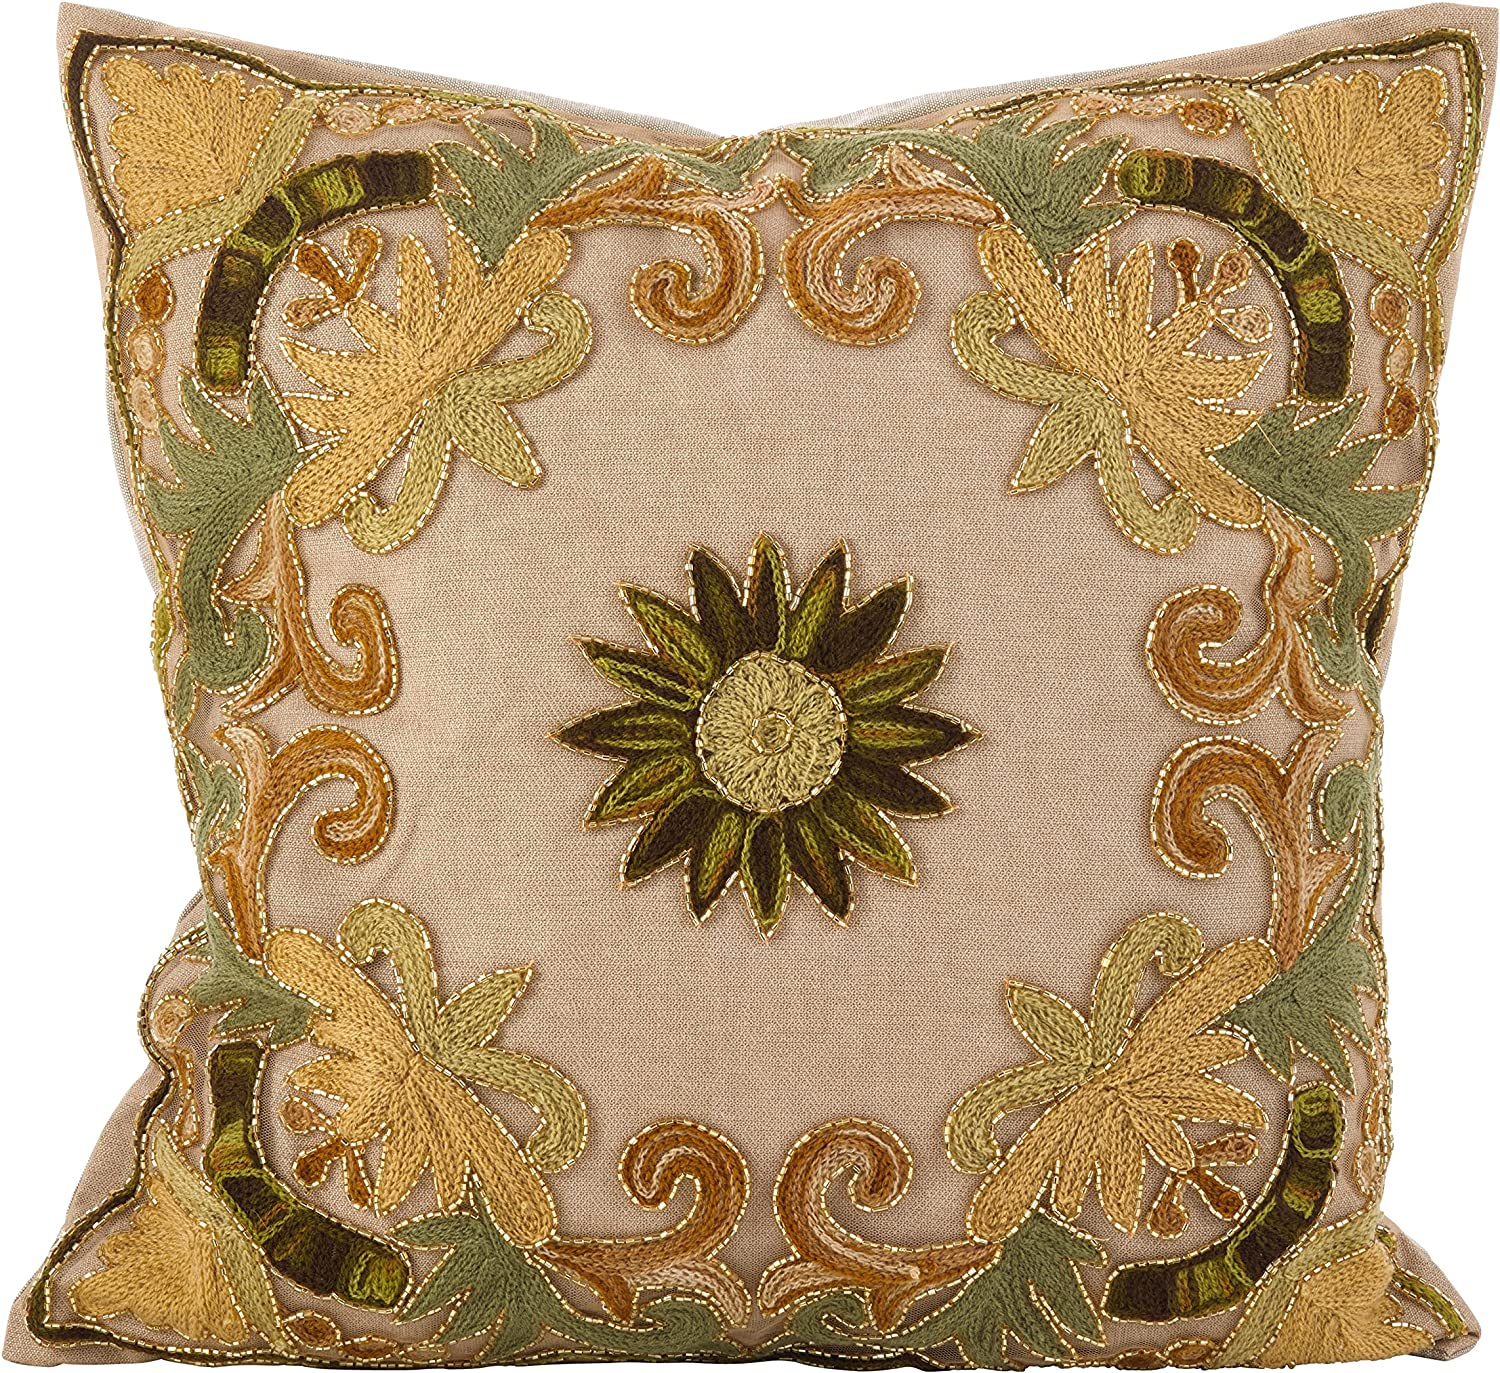 List price Max 41% OFF SARO LIFESTYLE Embroidered Floral Design Poly Cotton Fill Beaded